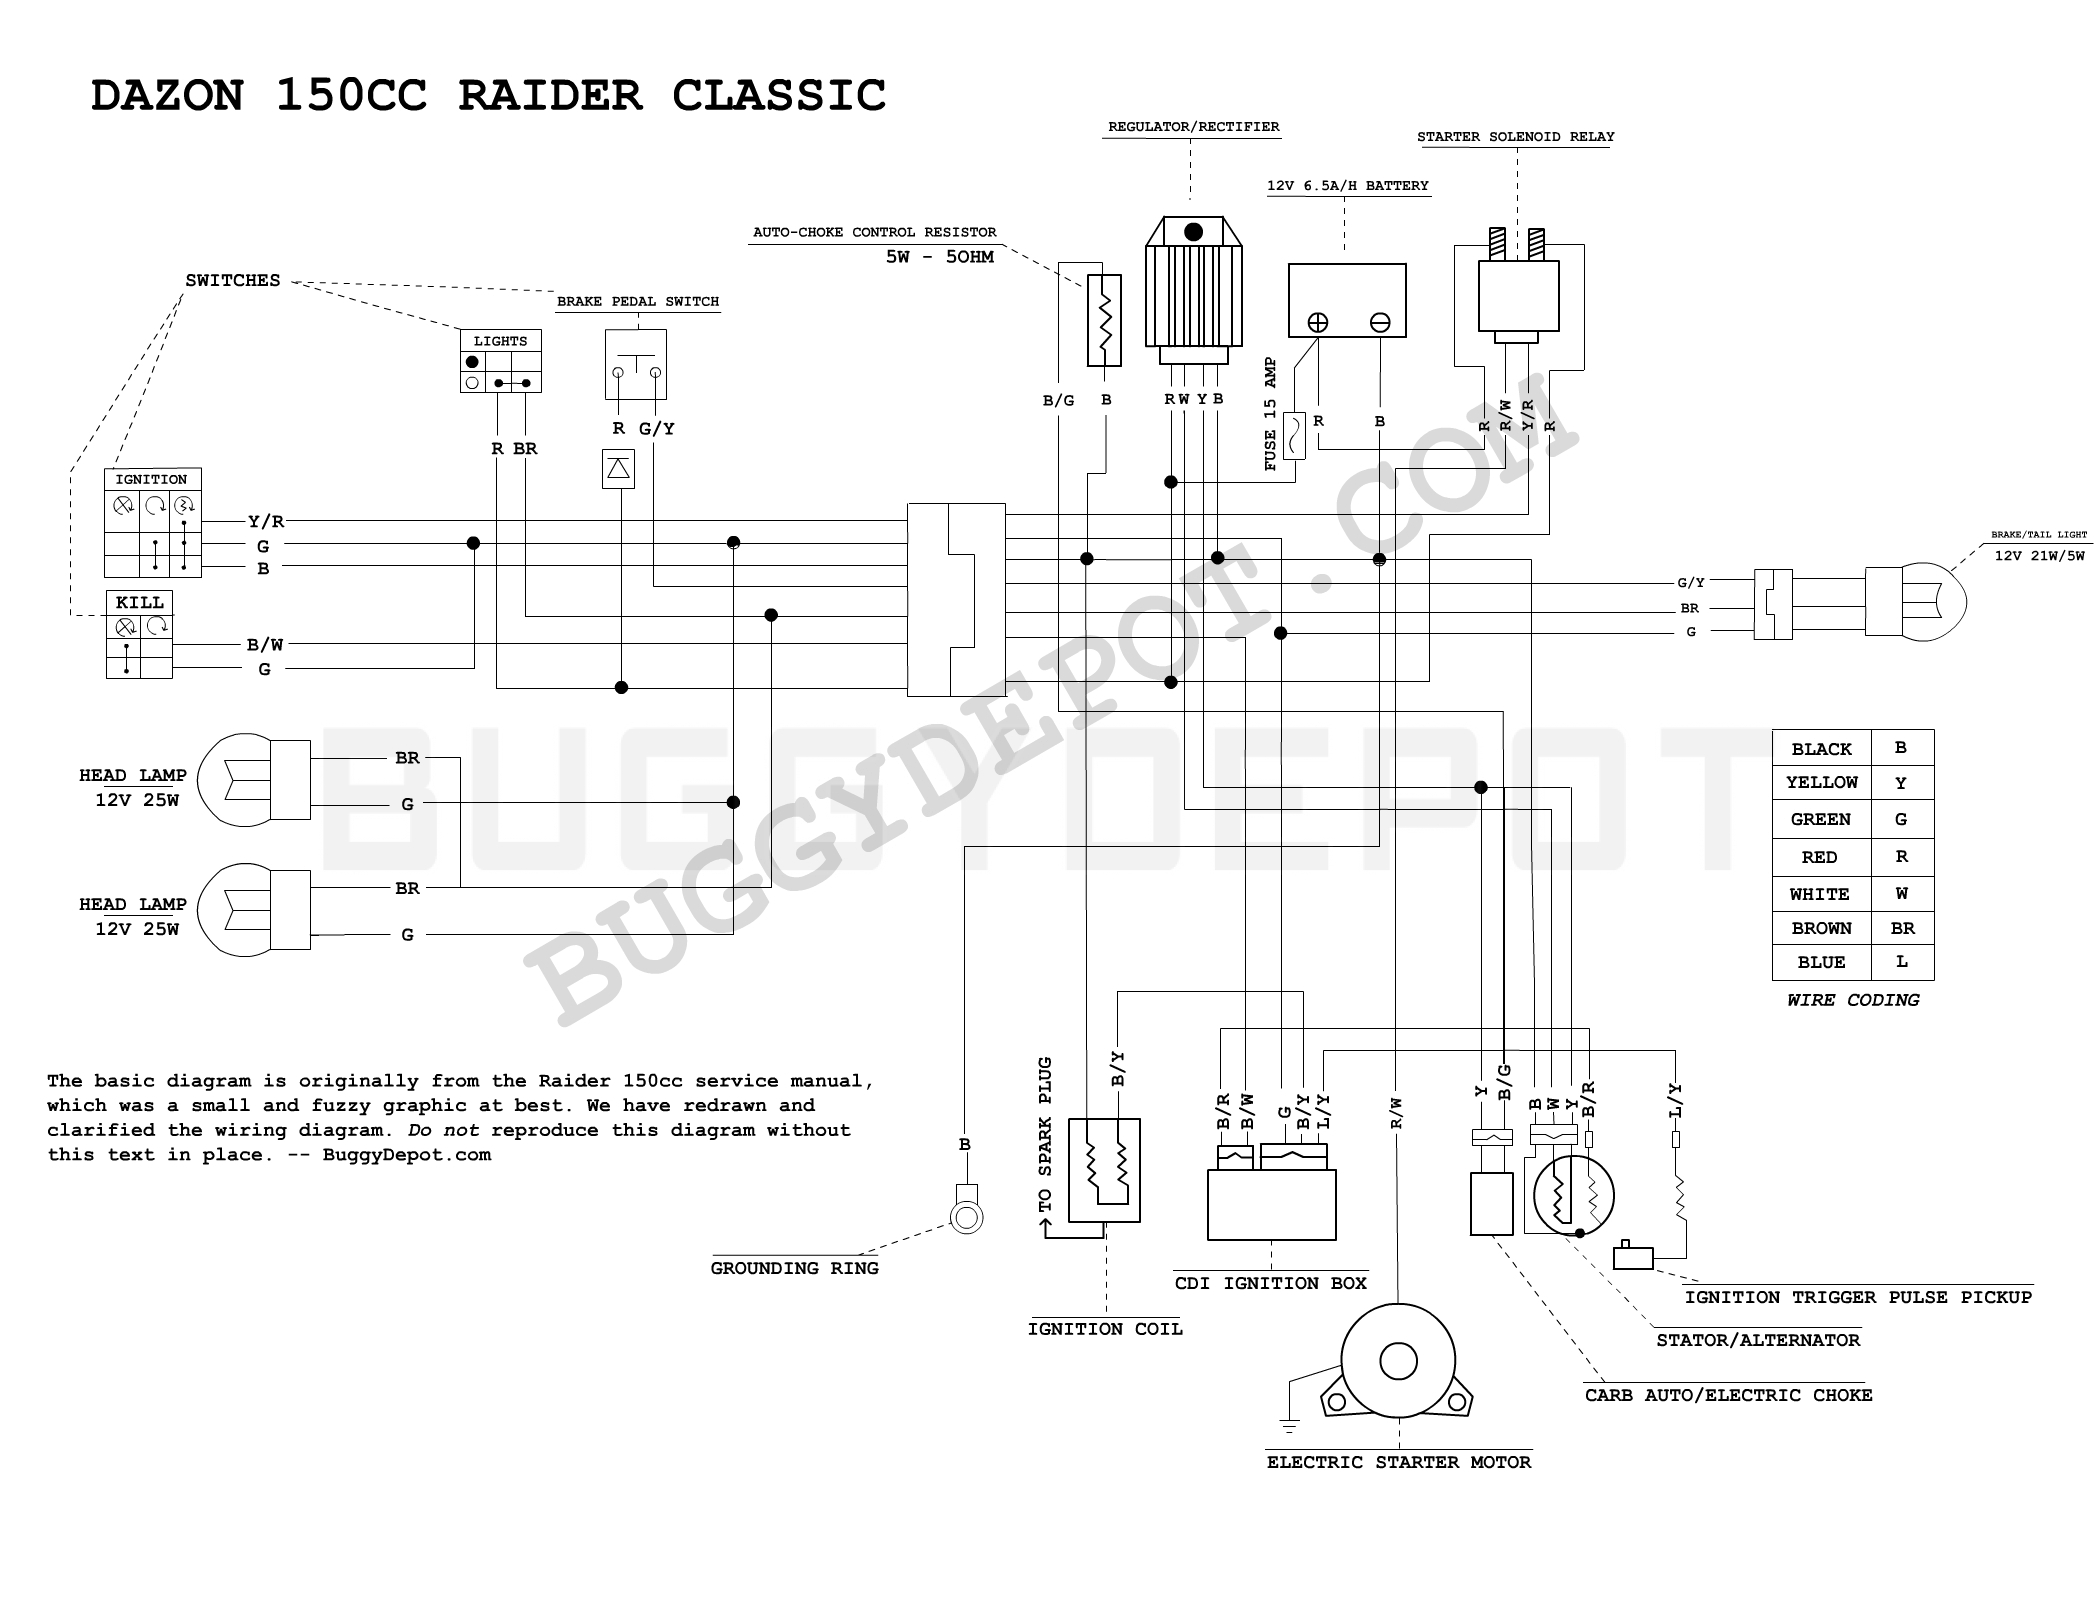 gy6 150cc ignition troubleshooting guide no spark? buggy depot 250Cc Scooter Wiring Diagram